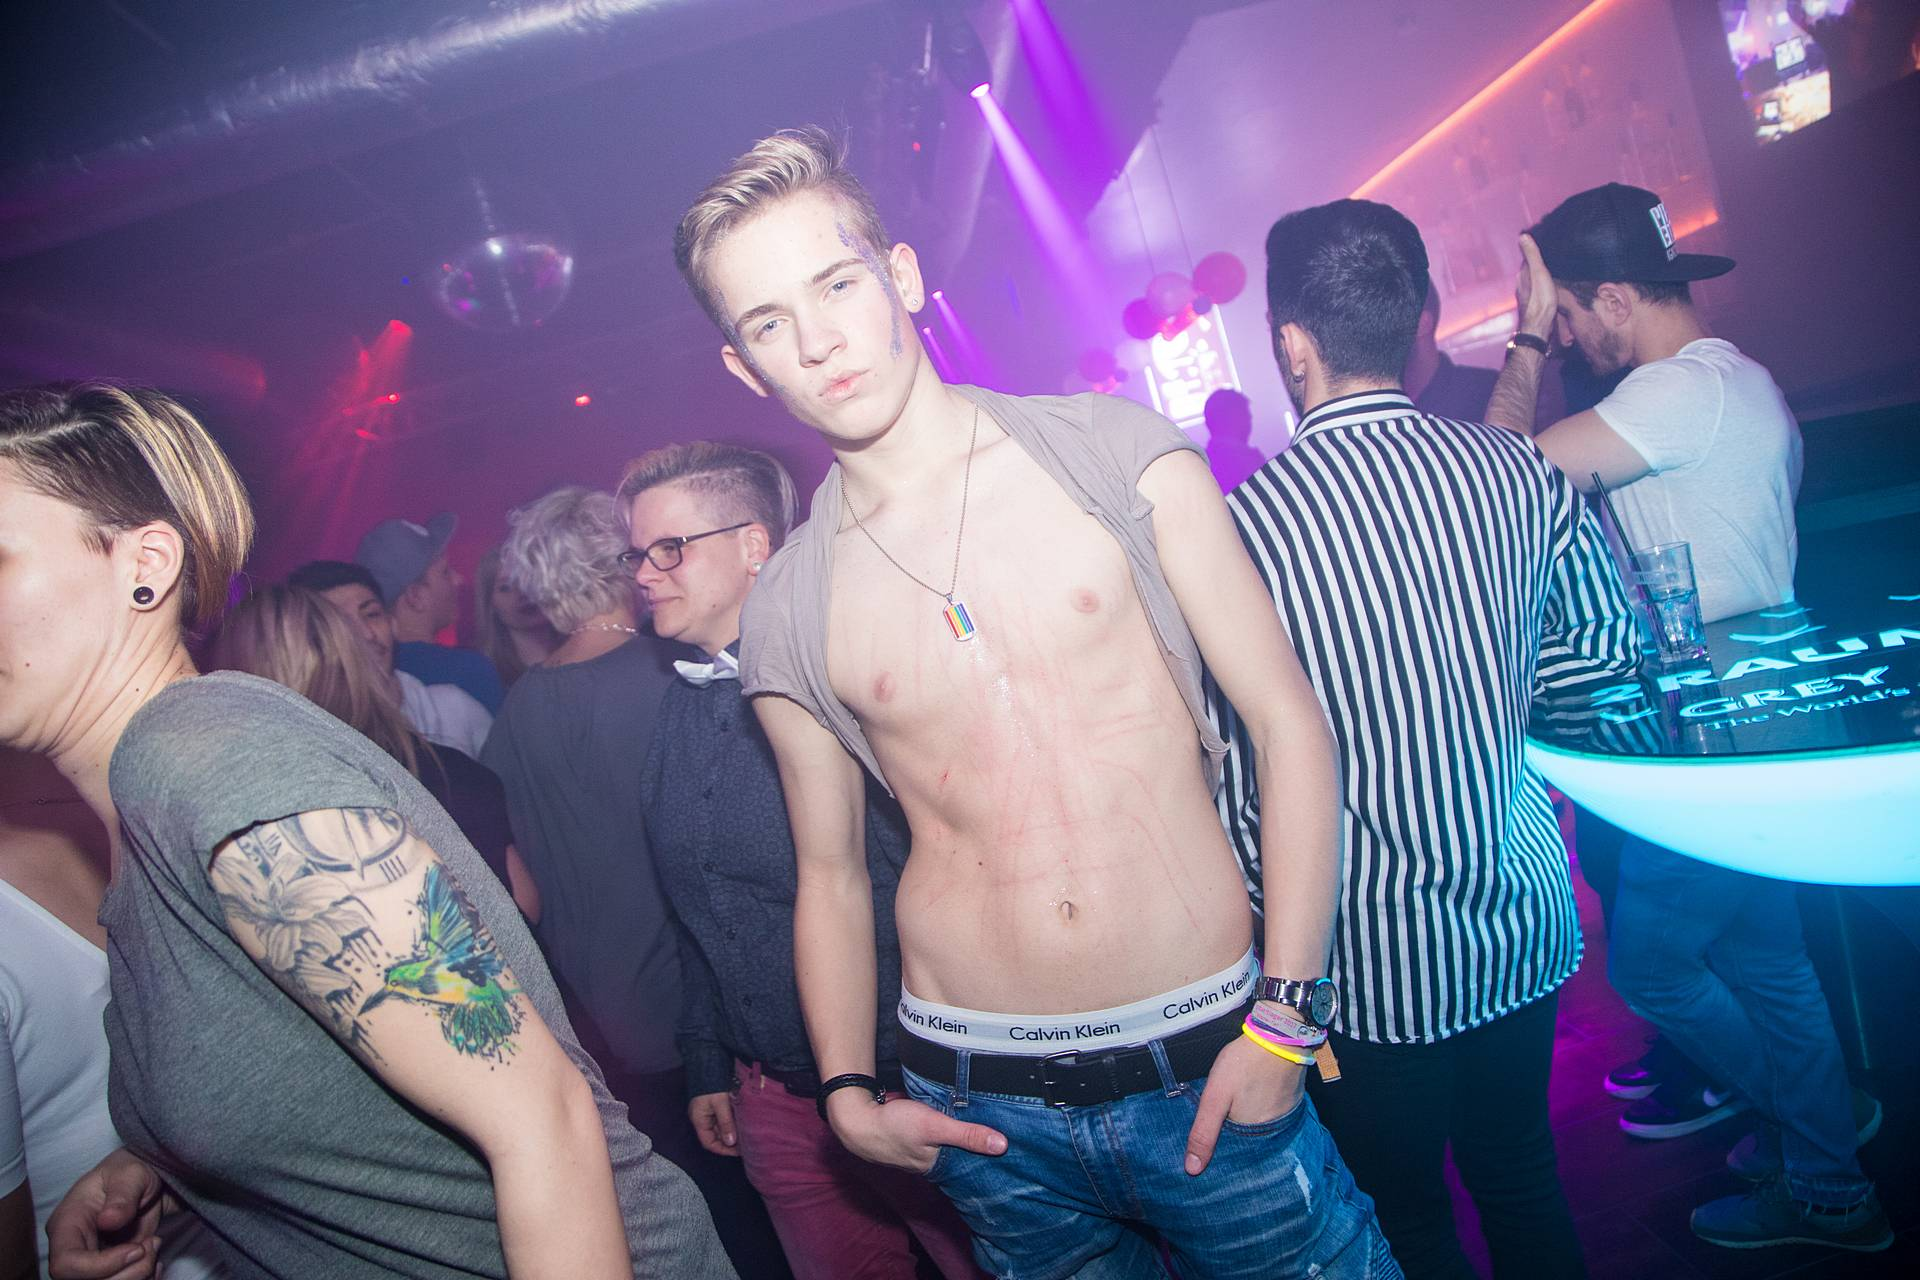 GayCANDY #100 - 7th BIG Birthday / 845x betrachtet